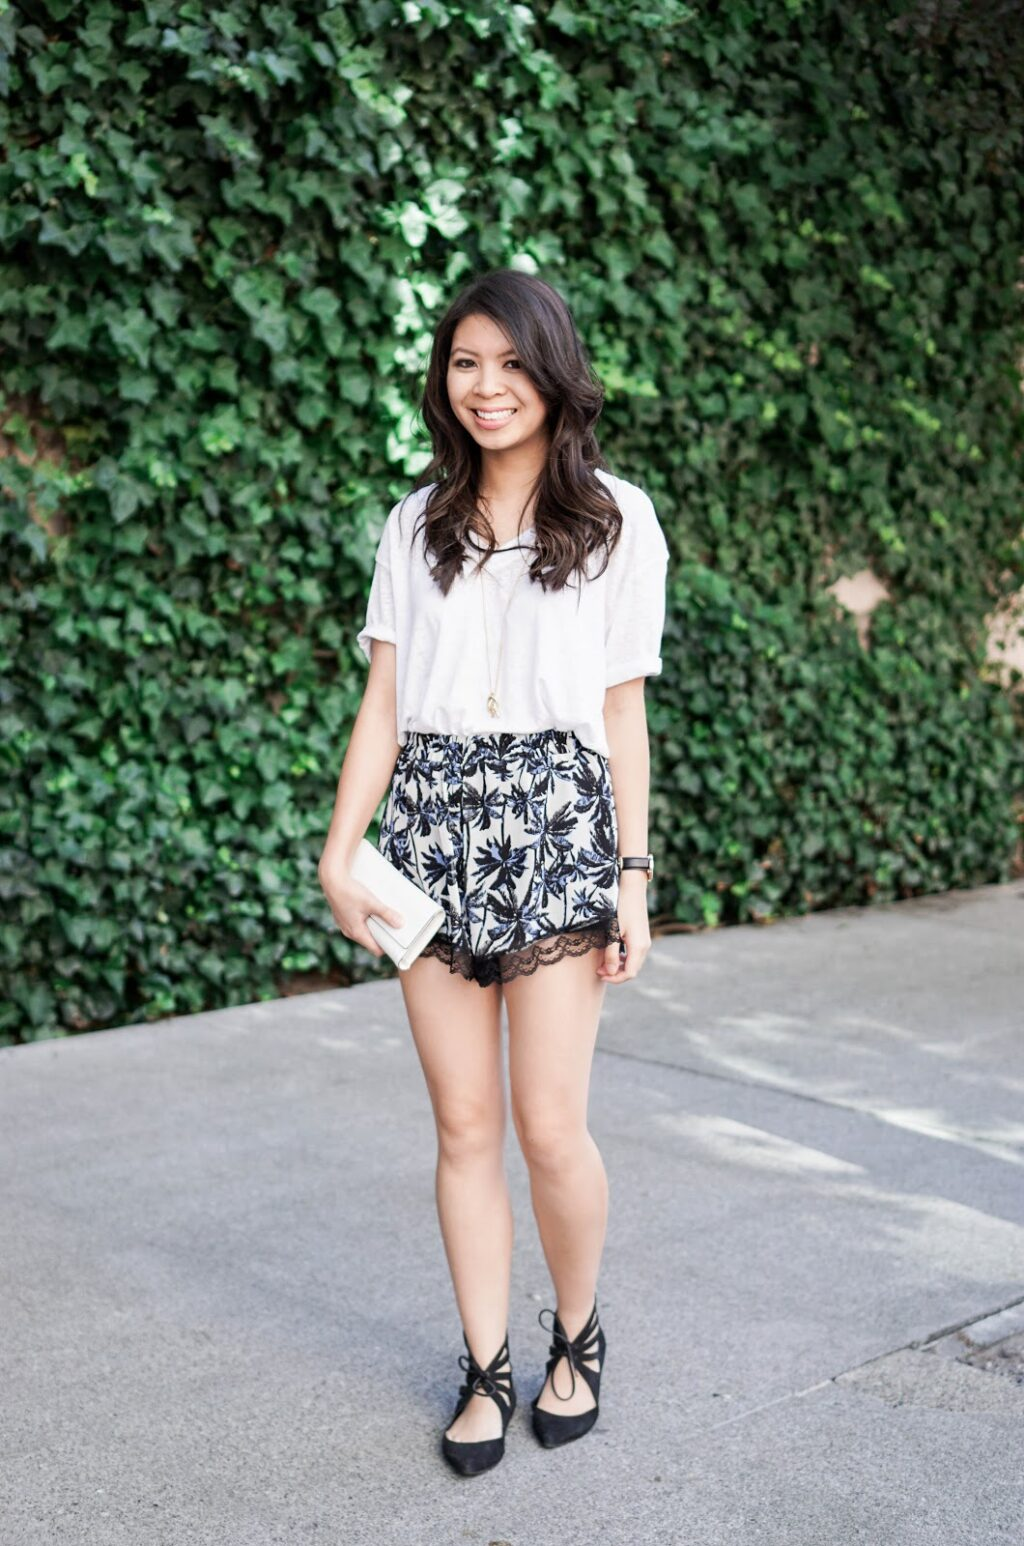 justatinabit-lace-trim-floral-palm-tree-print-shorts-leith-oversized-v-neck-tee-summer-style-outfit-jeffrey-campbell-gazebo-lace-up-flats